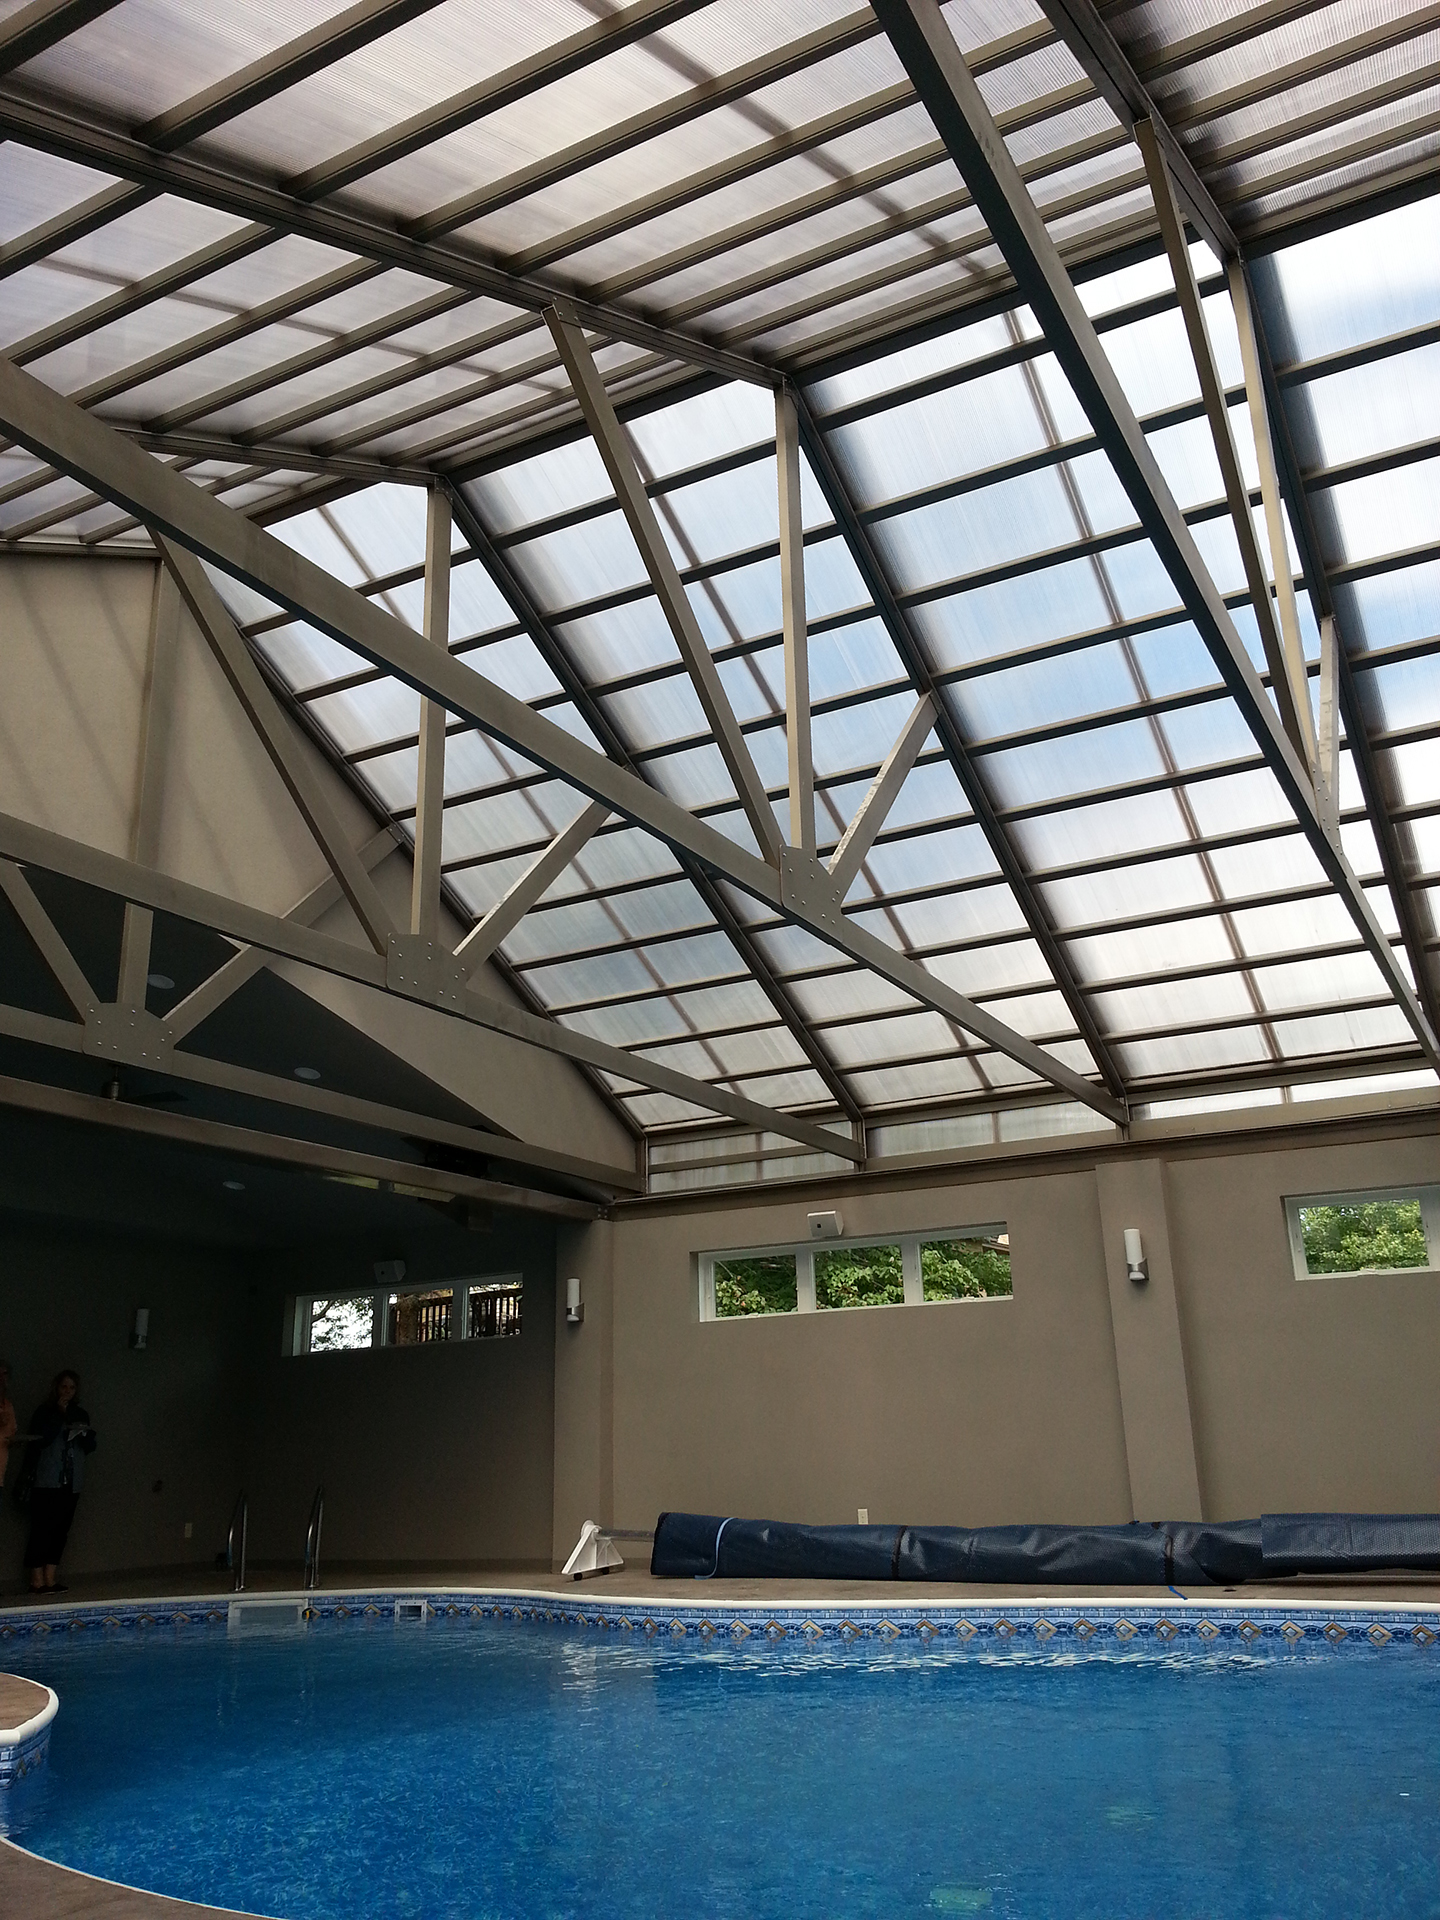 Retractable patio cover over pool